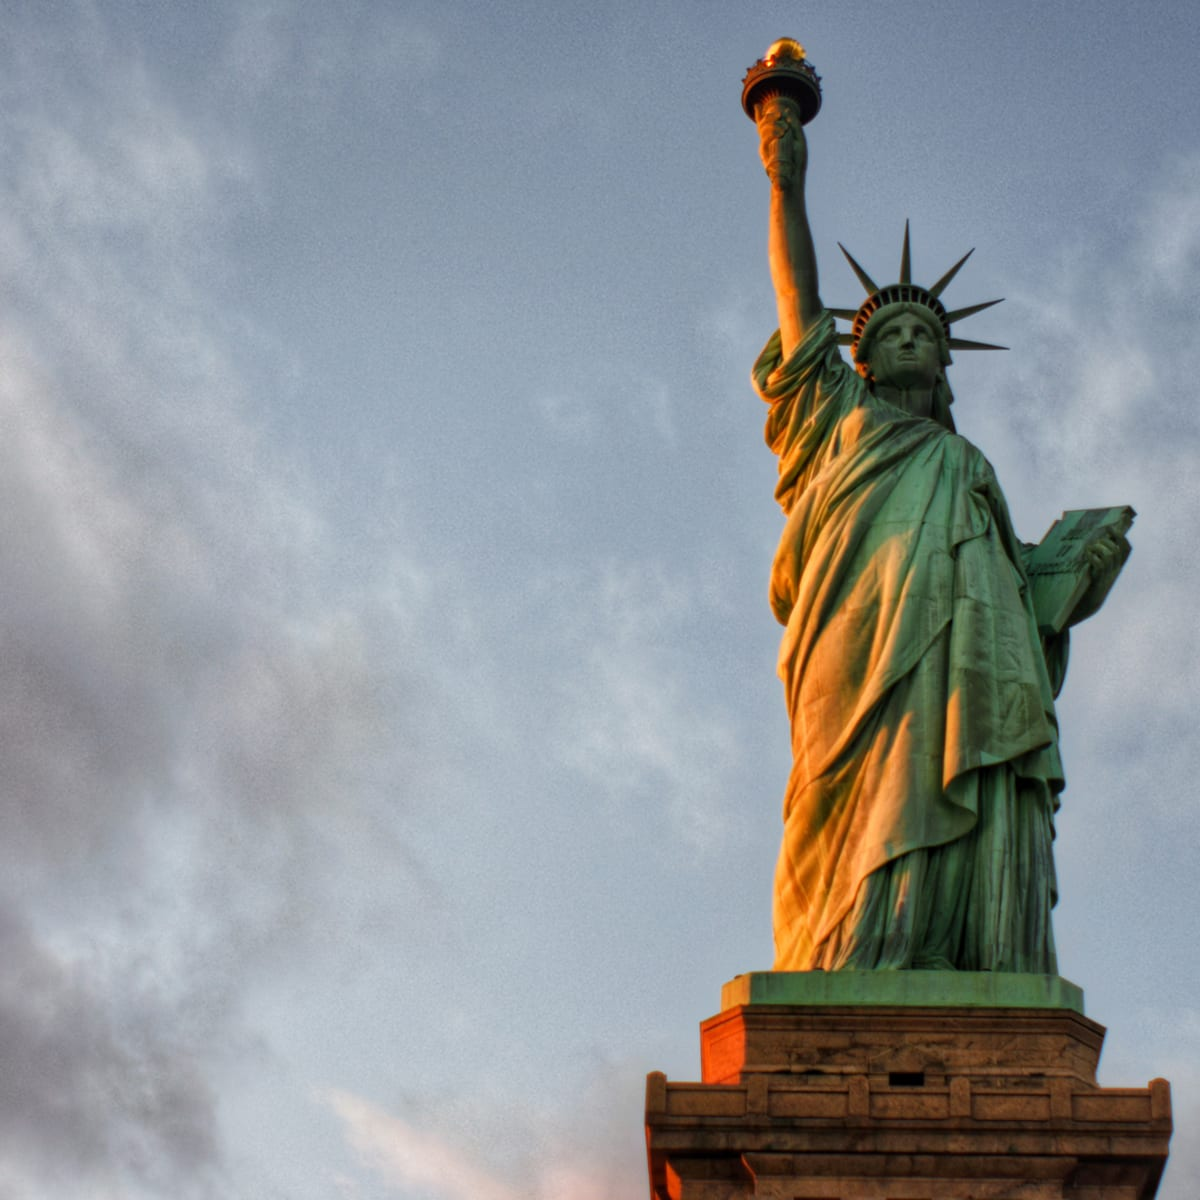 How The Statue Of Liberty Became An Icon History